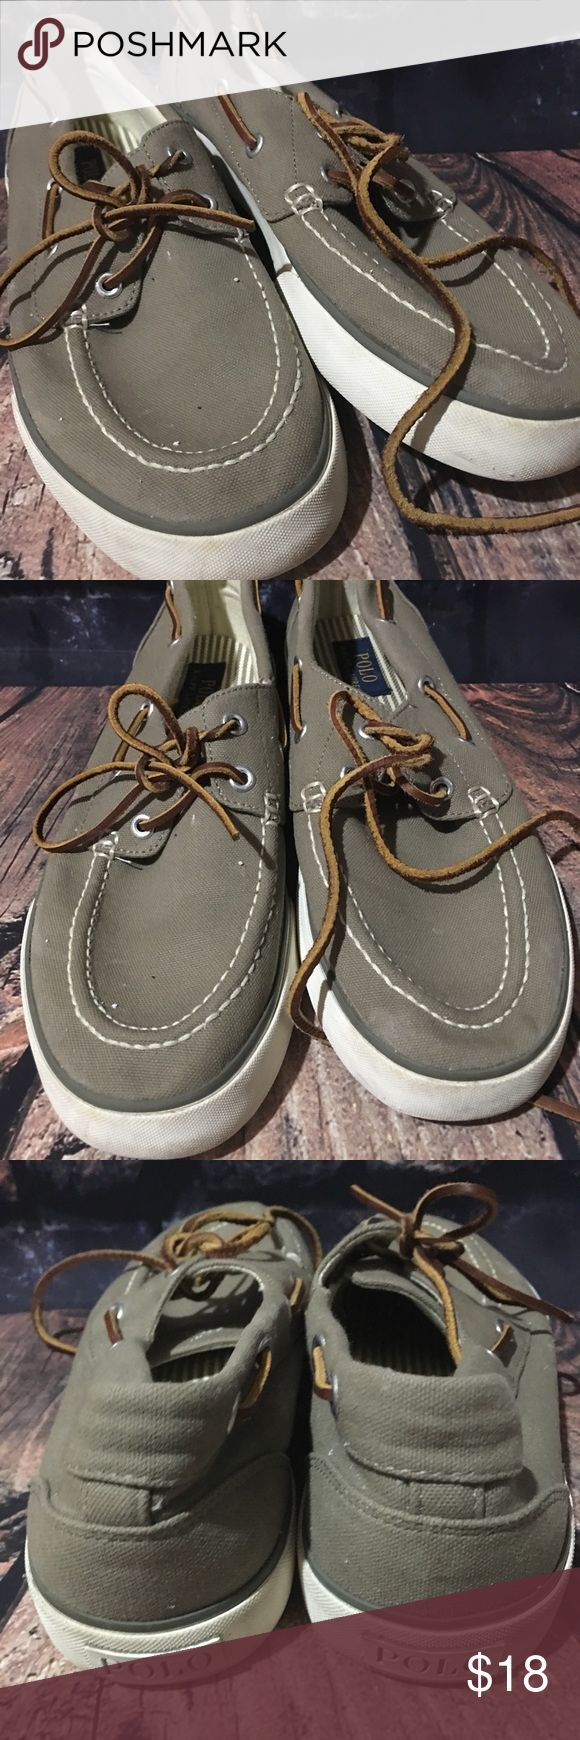 POLO Ralph Lauren Boat Shoes Men's 8.5D POLO Ralph Lauren Sander Boat Shoes Men's Size 8.5 D  Gently used condition. No rips or holes. Color has faded.  Canvas Casual Khaki Color, leather laces measurements are approximate 11 inches on outside sole 10 inches on inside sole Polo by Ralph Lauren Shoes